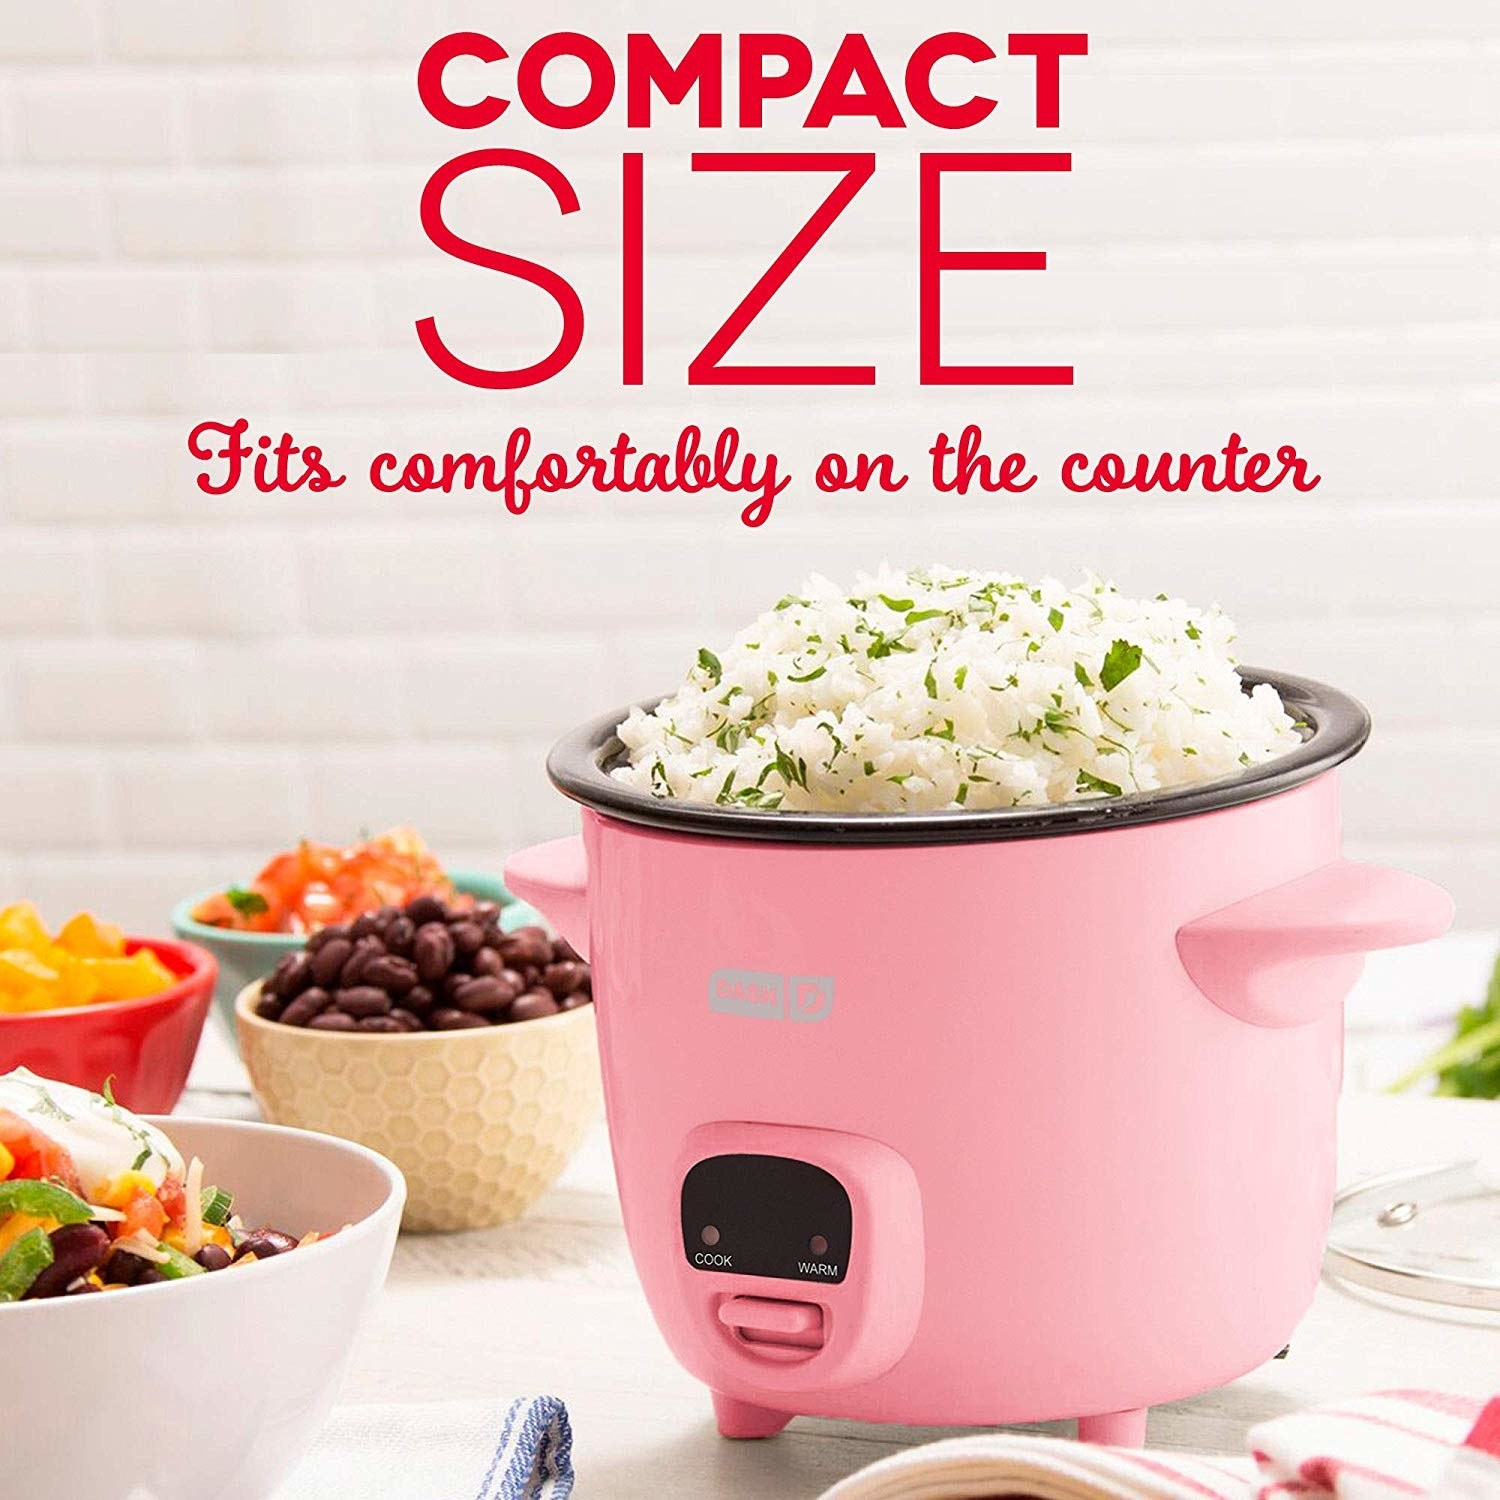 compact rice cooker full of rice